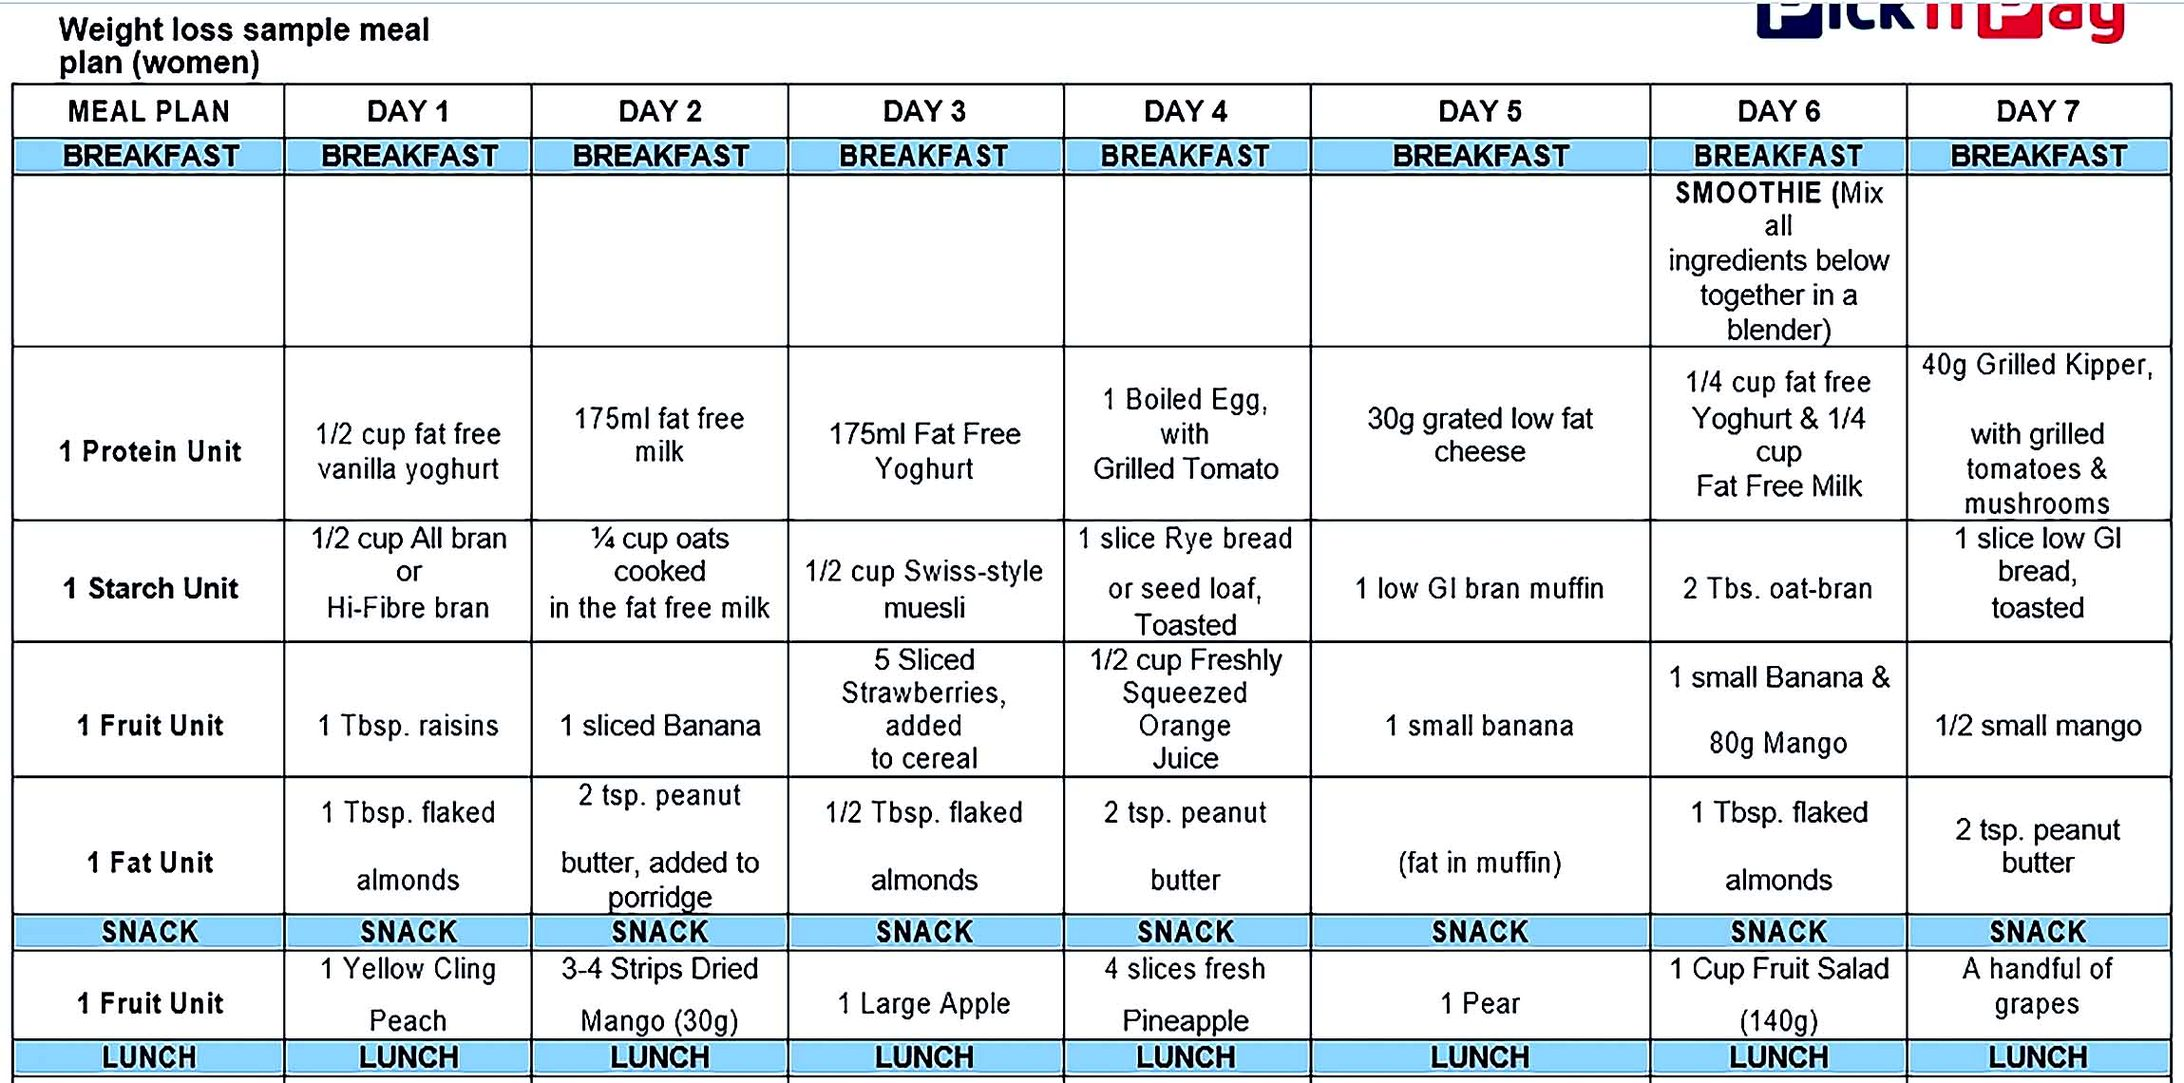 Weight loss sample meal plan